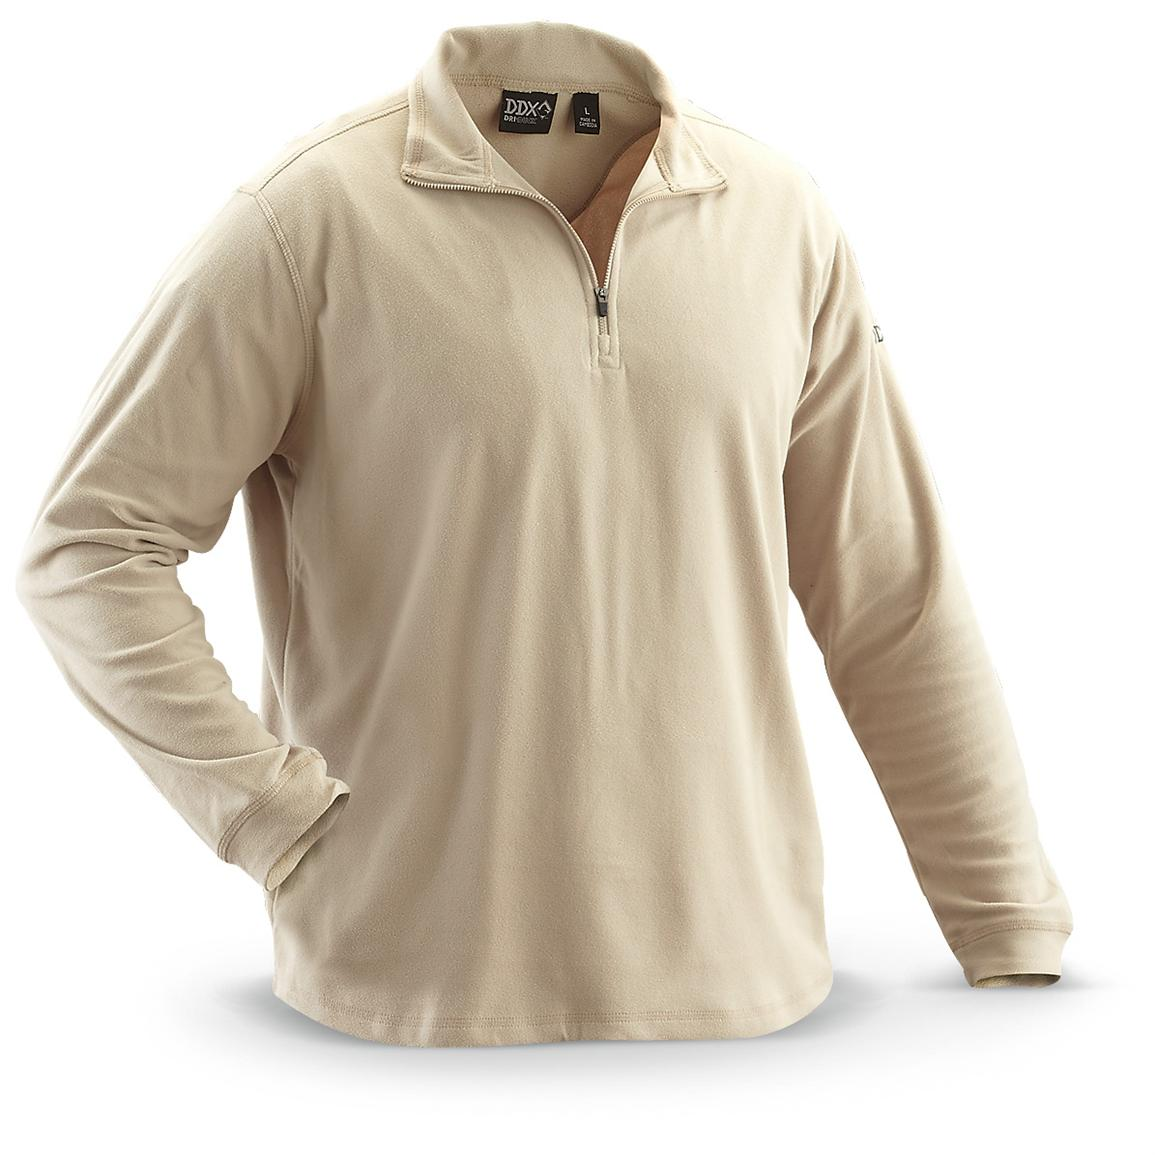 Dri-Duck® Element 1/4-zip Fleece Pullover, Tawny